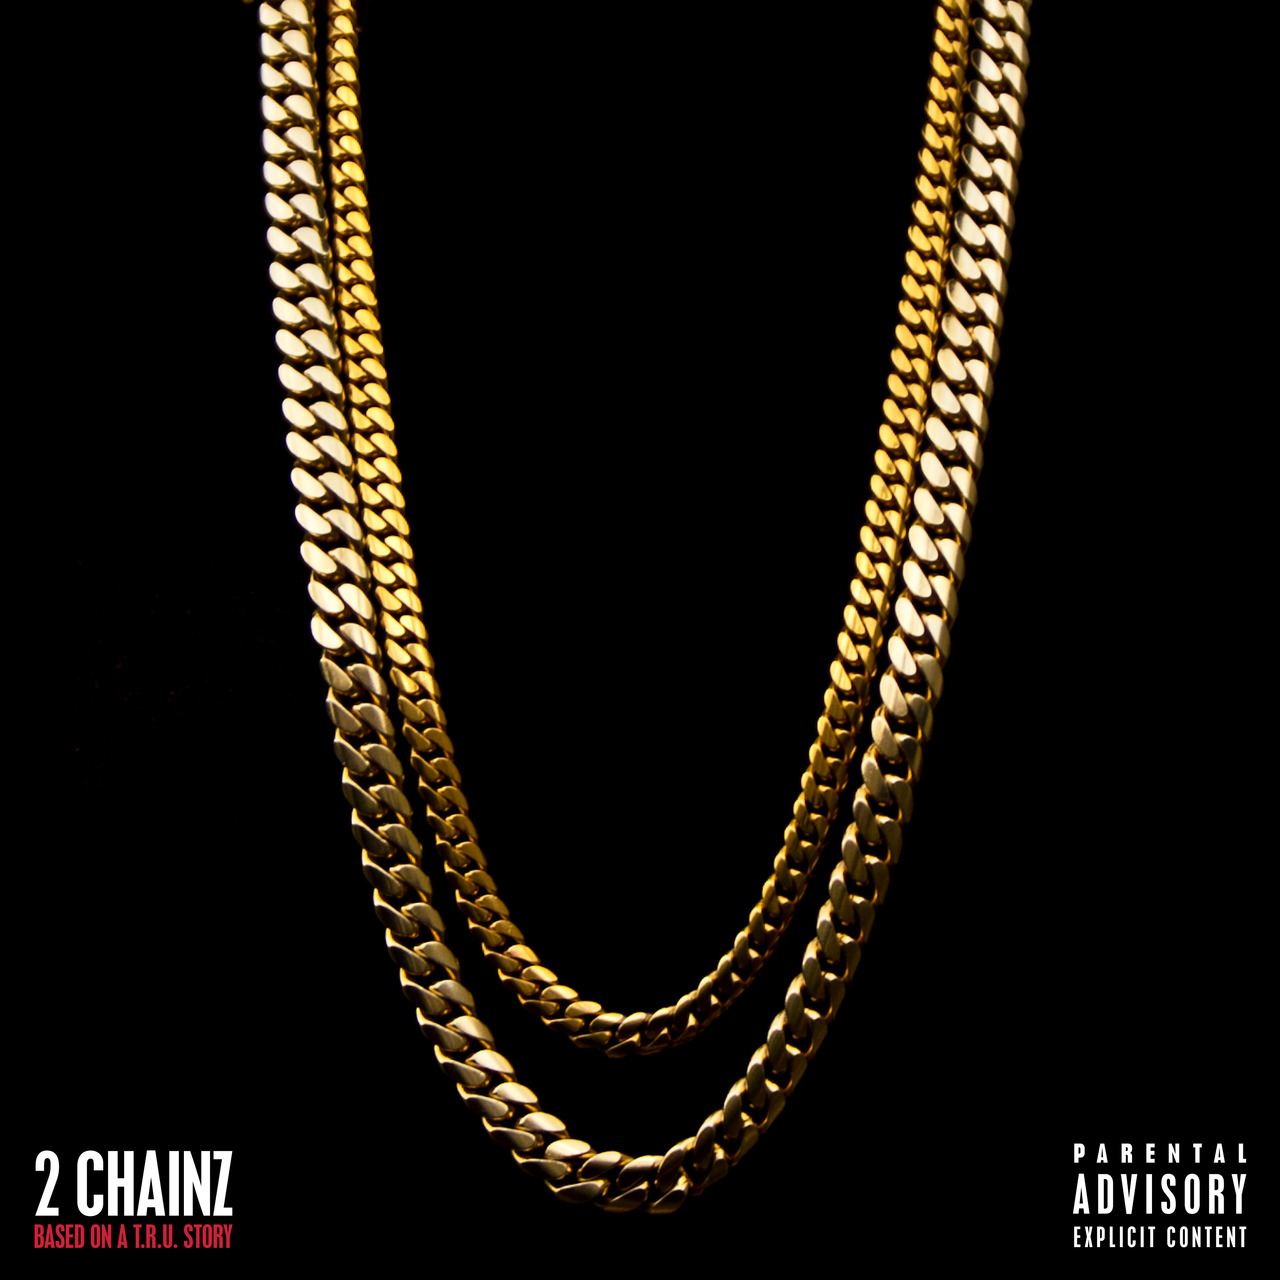 2 Chainz Twilight Zone